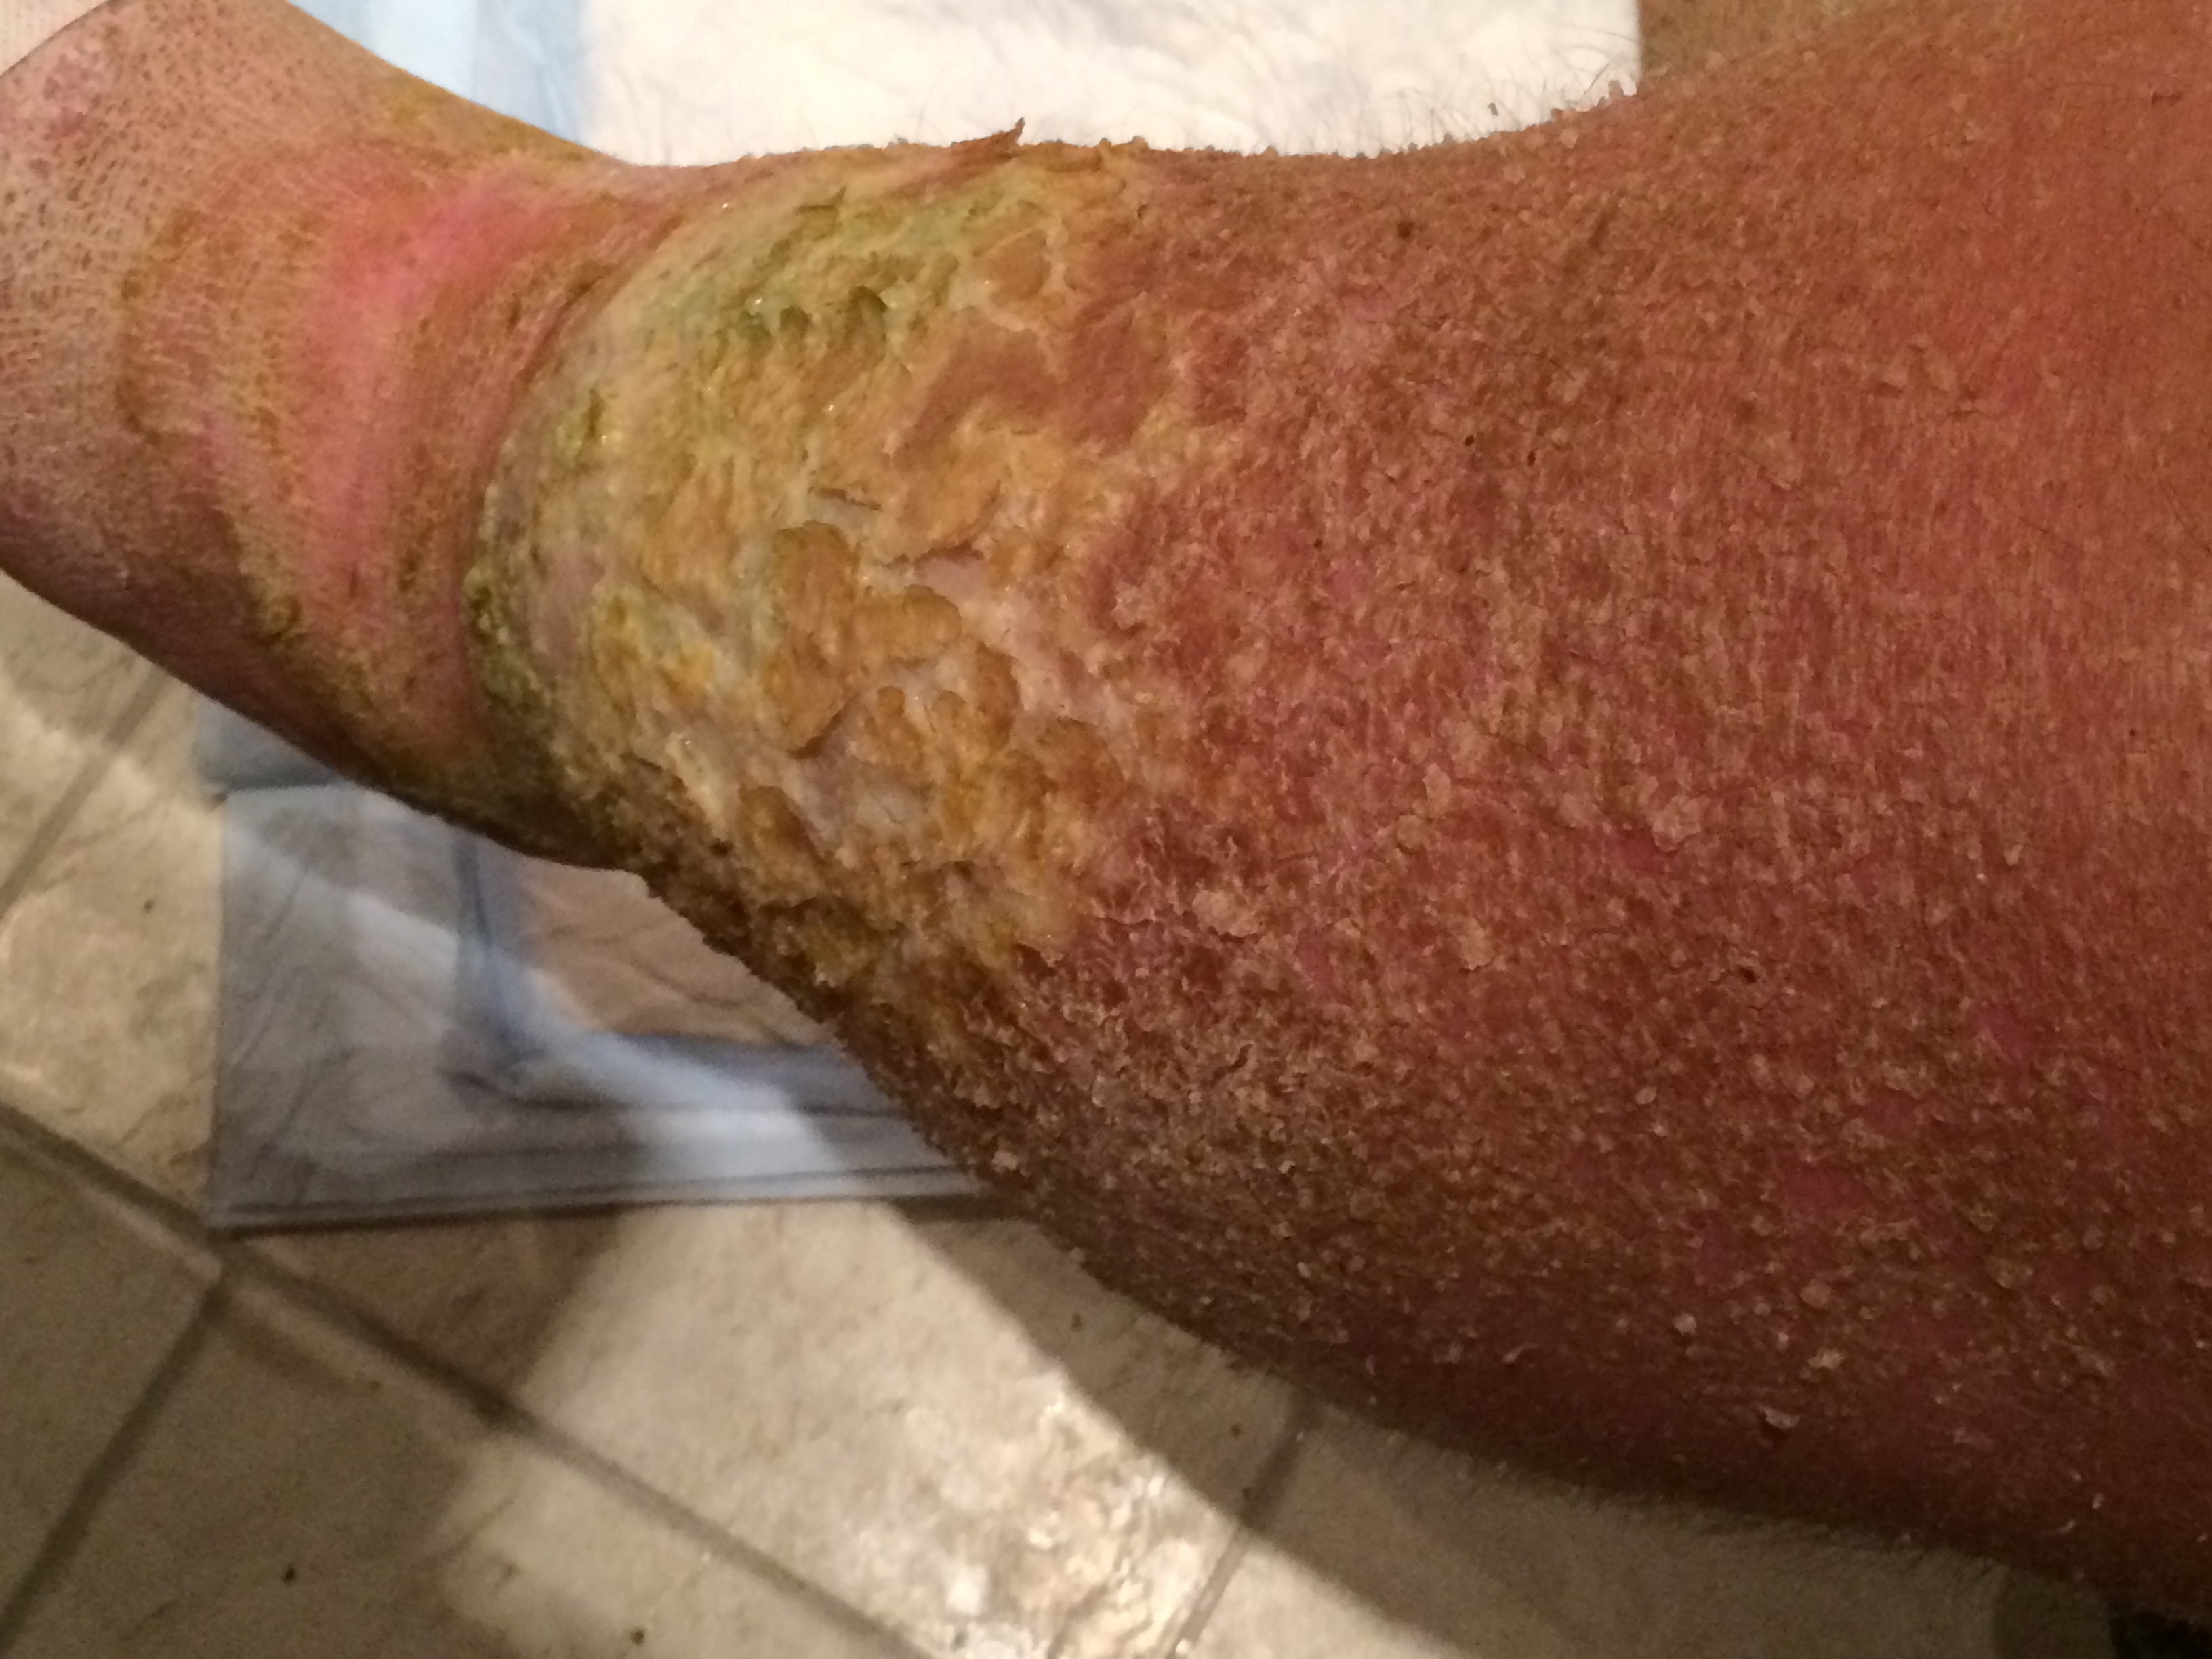 Flaky Skin On Legs Pictures Photos